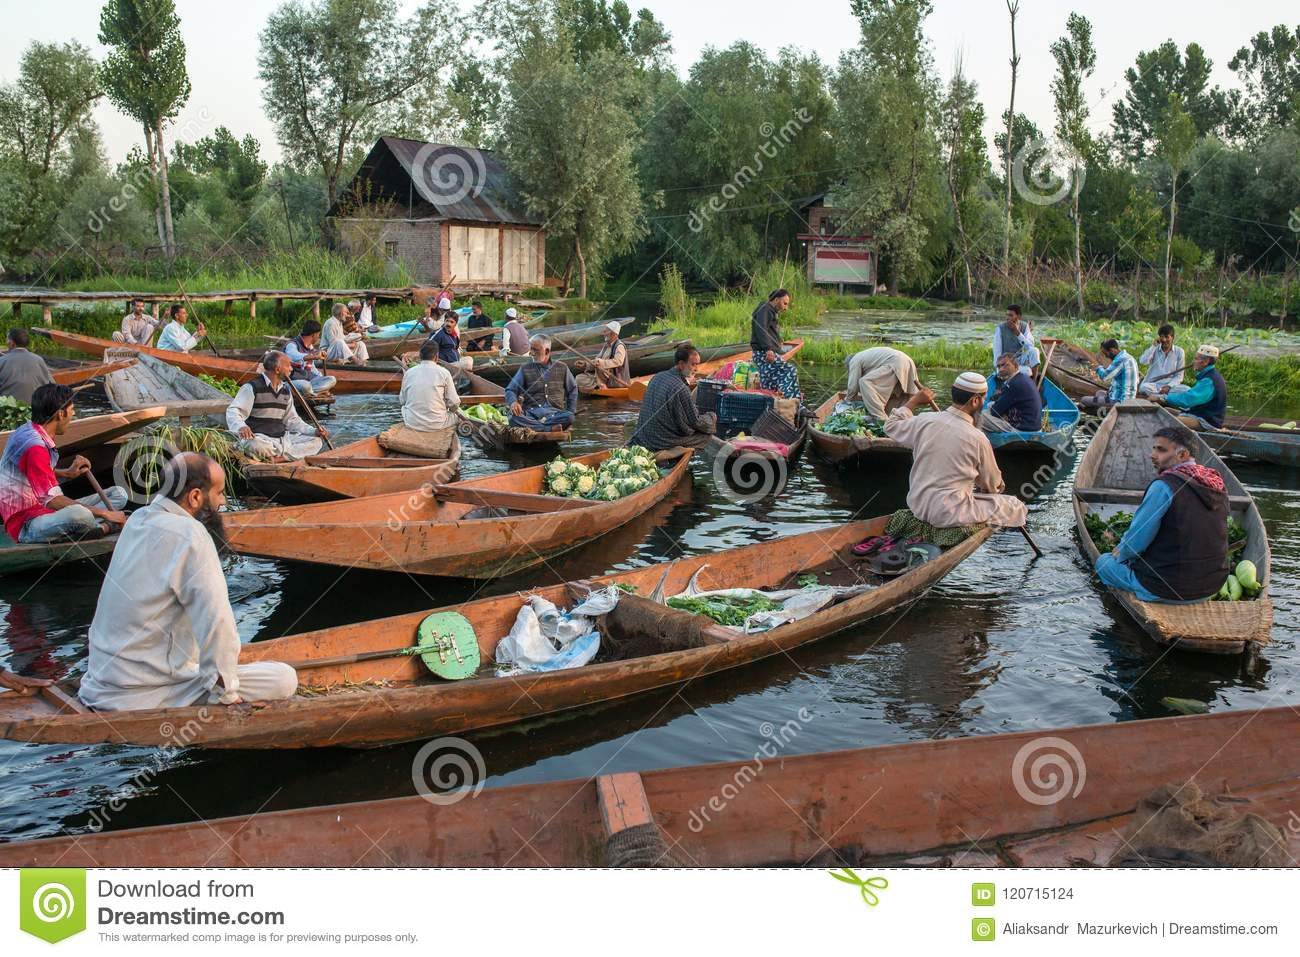 Unidentified vegetable sellers taking their produce to the floating market early in the morning on Dal Lake in Srinagar, Kashmir.